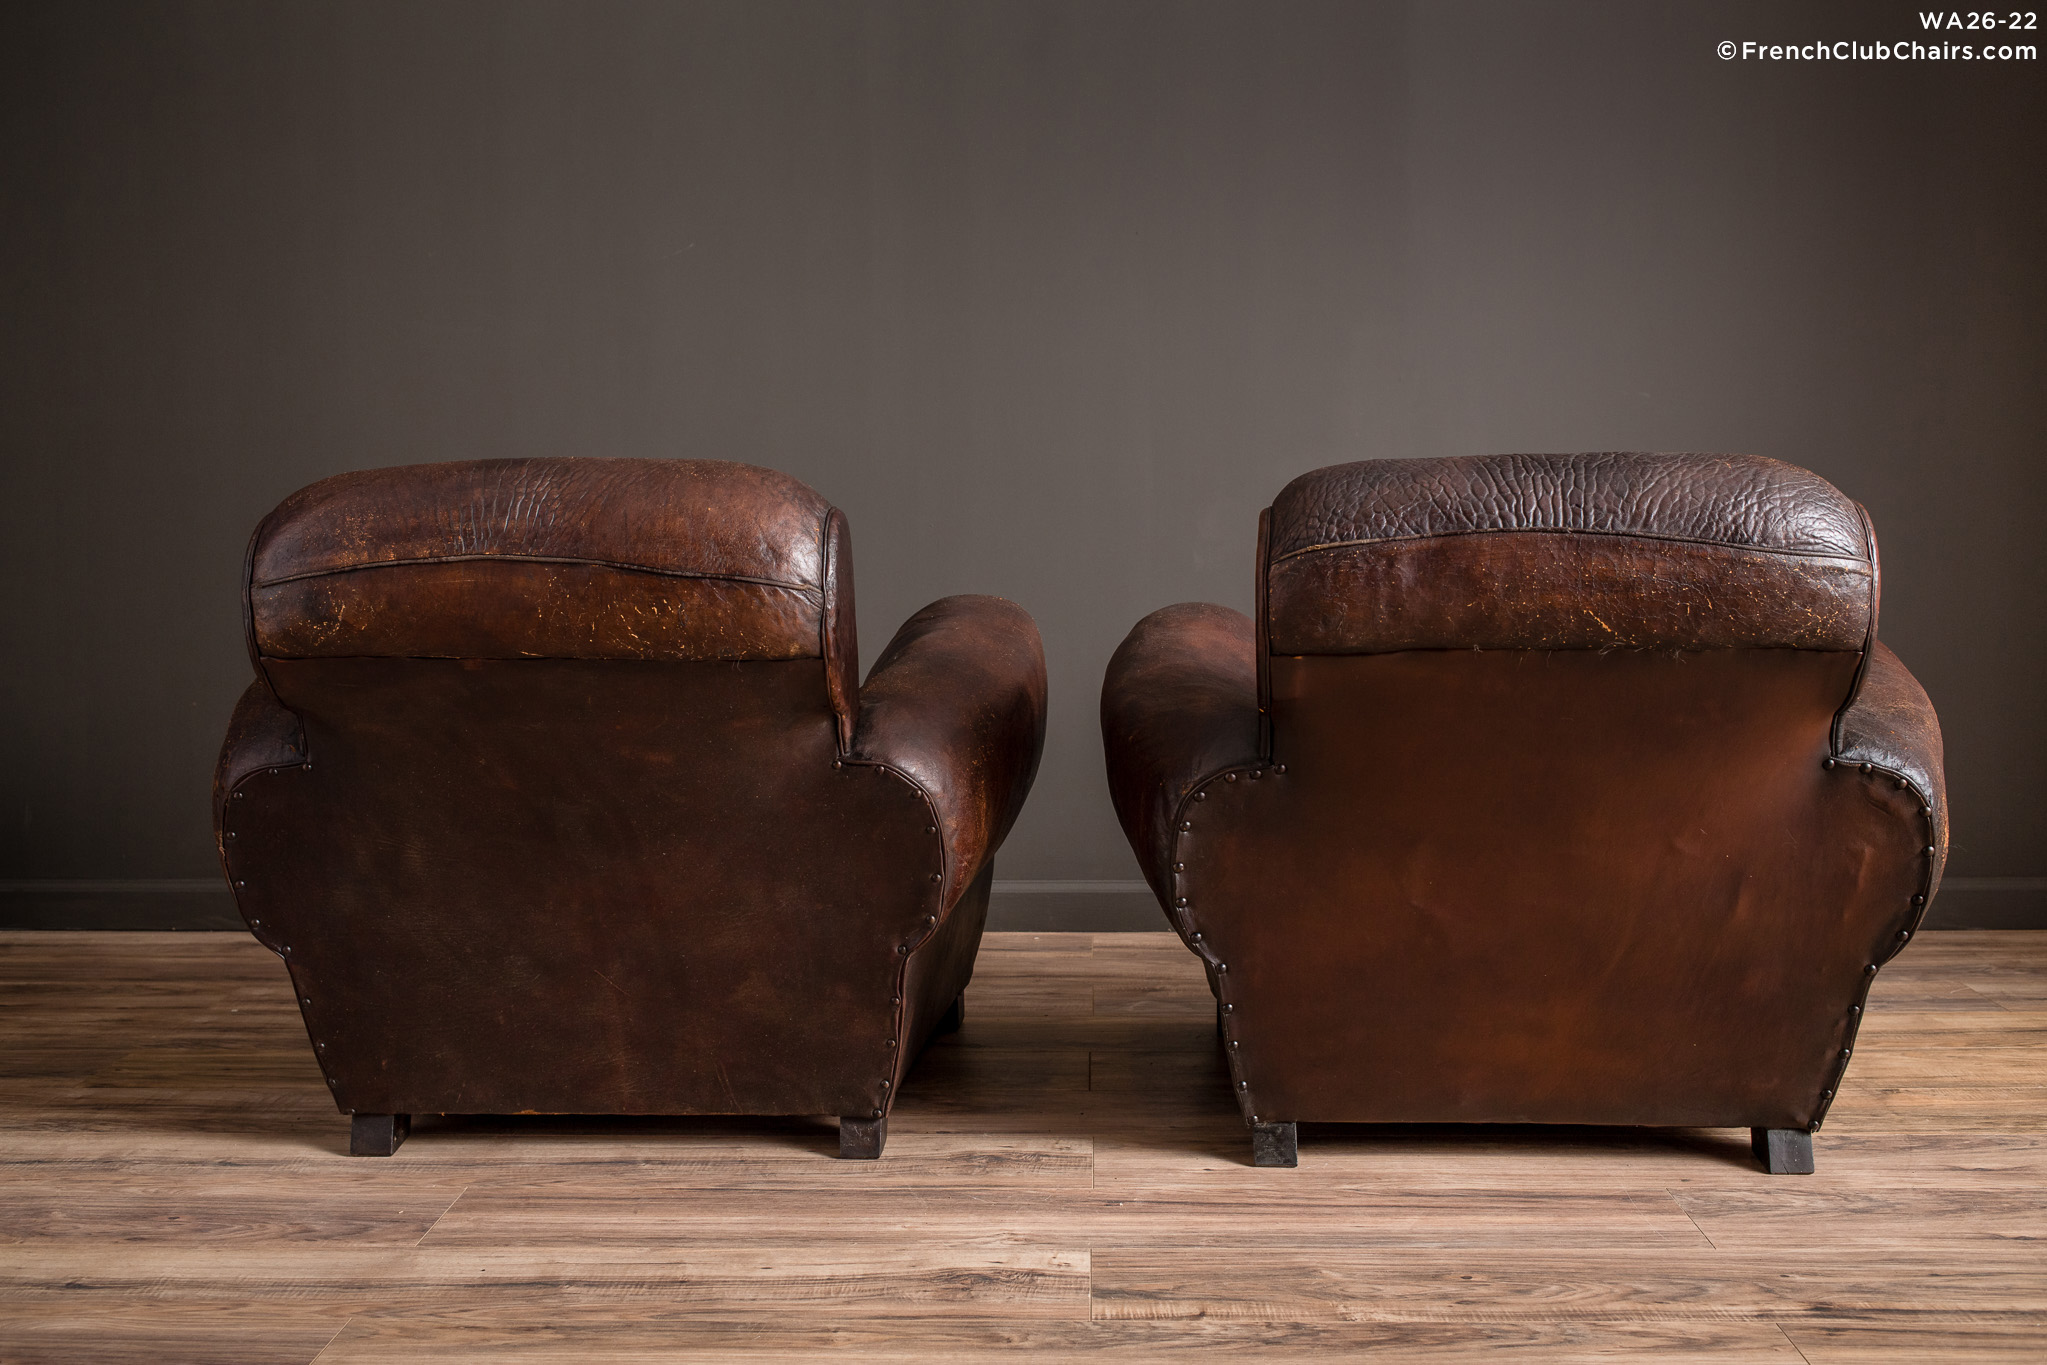 WA_26-22_Biarritz_Rich_Chocolate_Rollback_pair_R_2BK-v01-williams-antiks-leather-french-club-chair-wa_fcccom